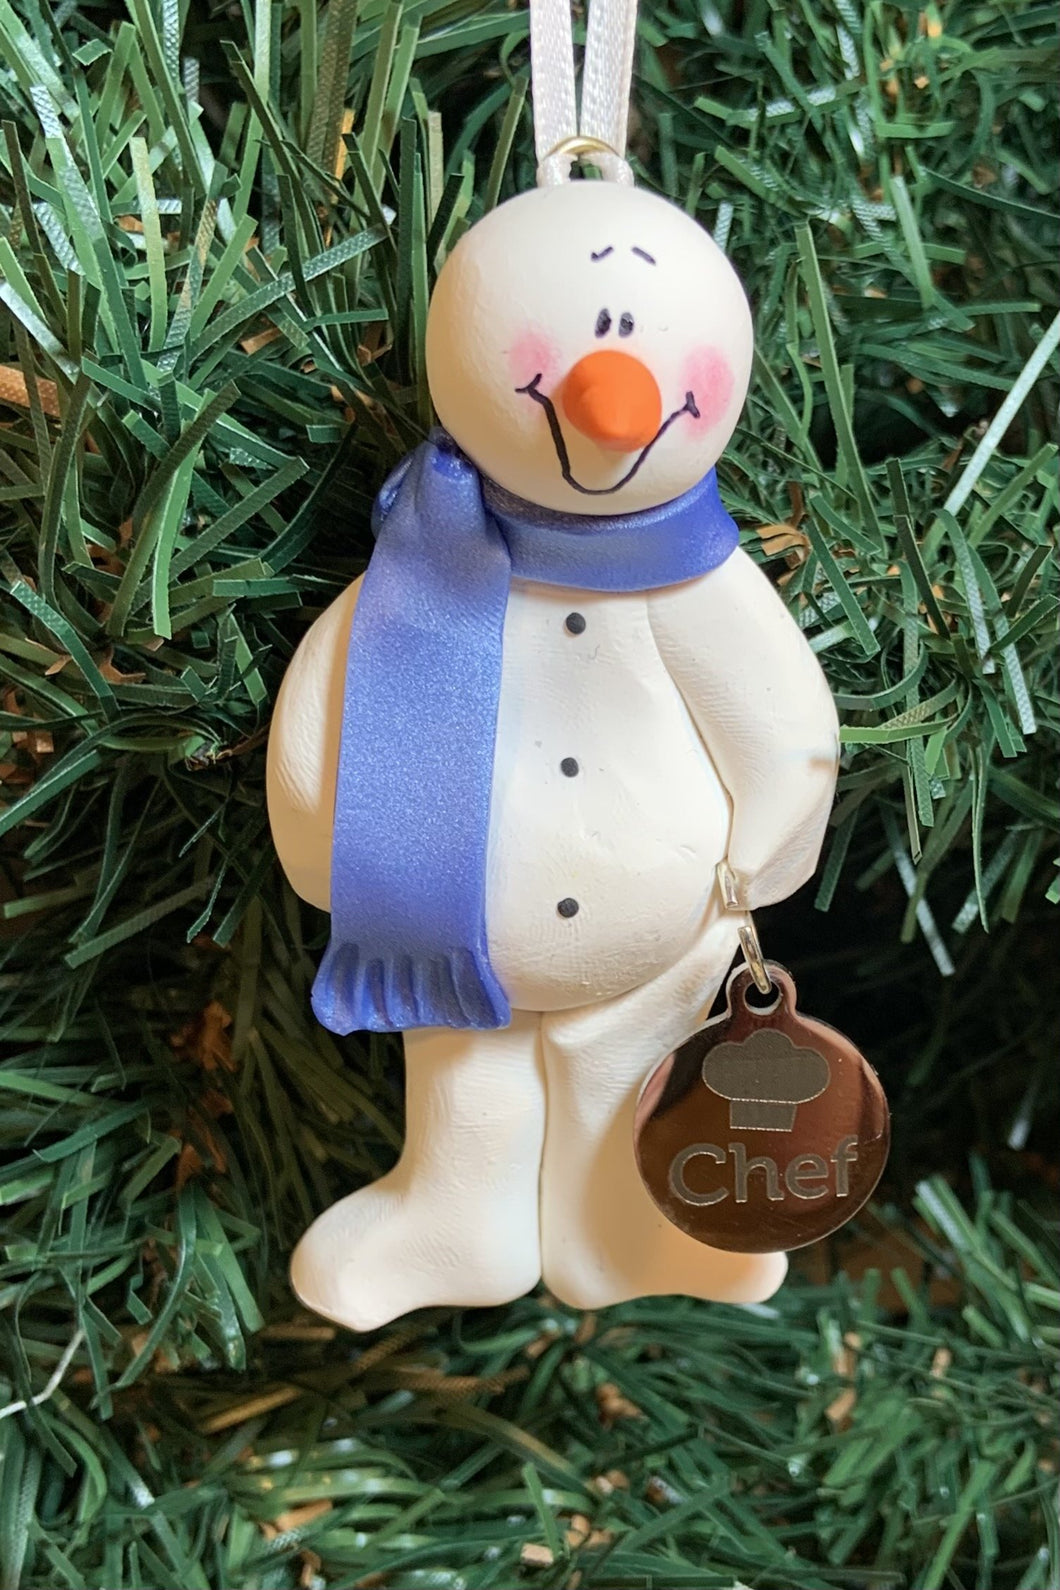 Chef Charm Snowman Tree Ornament